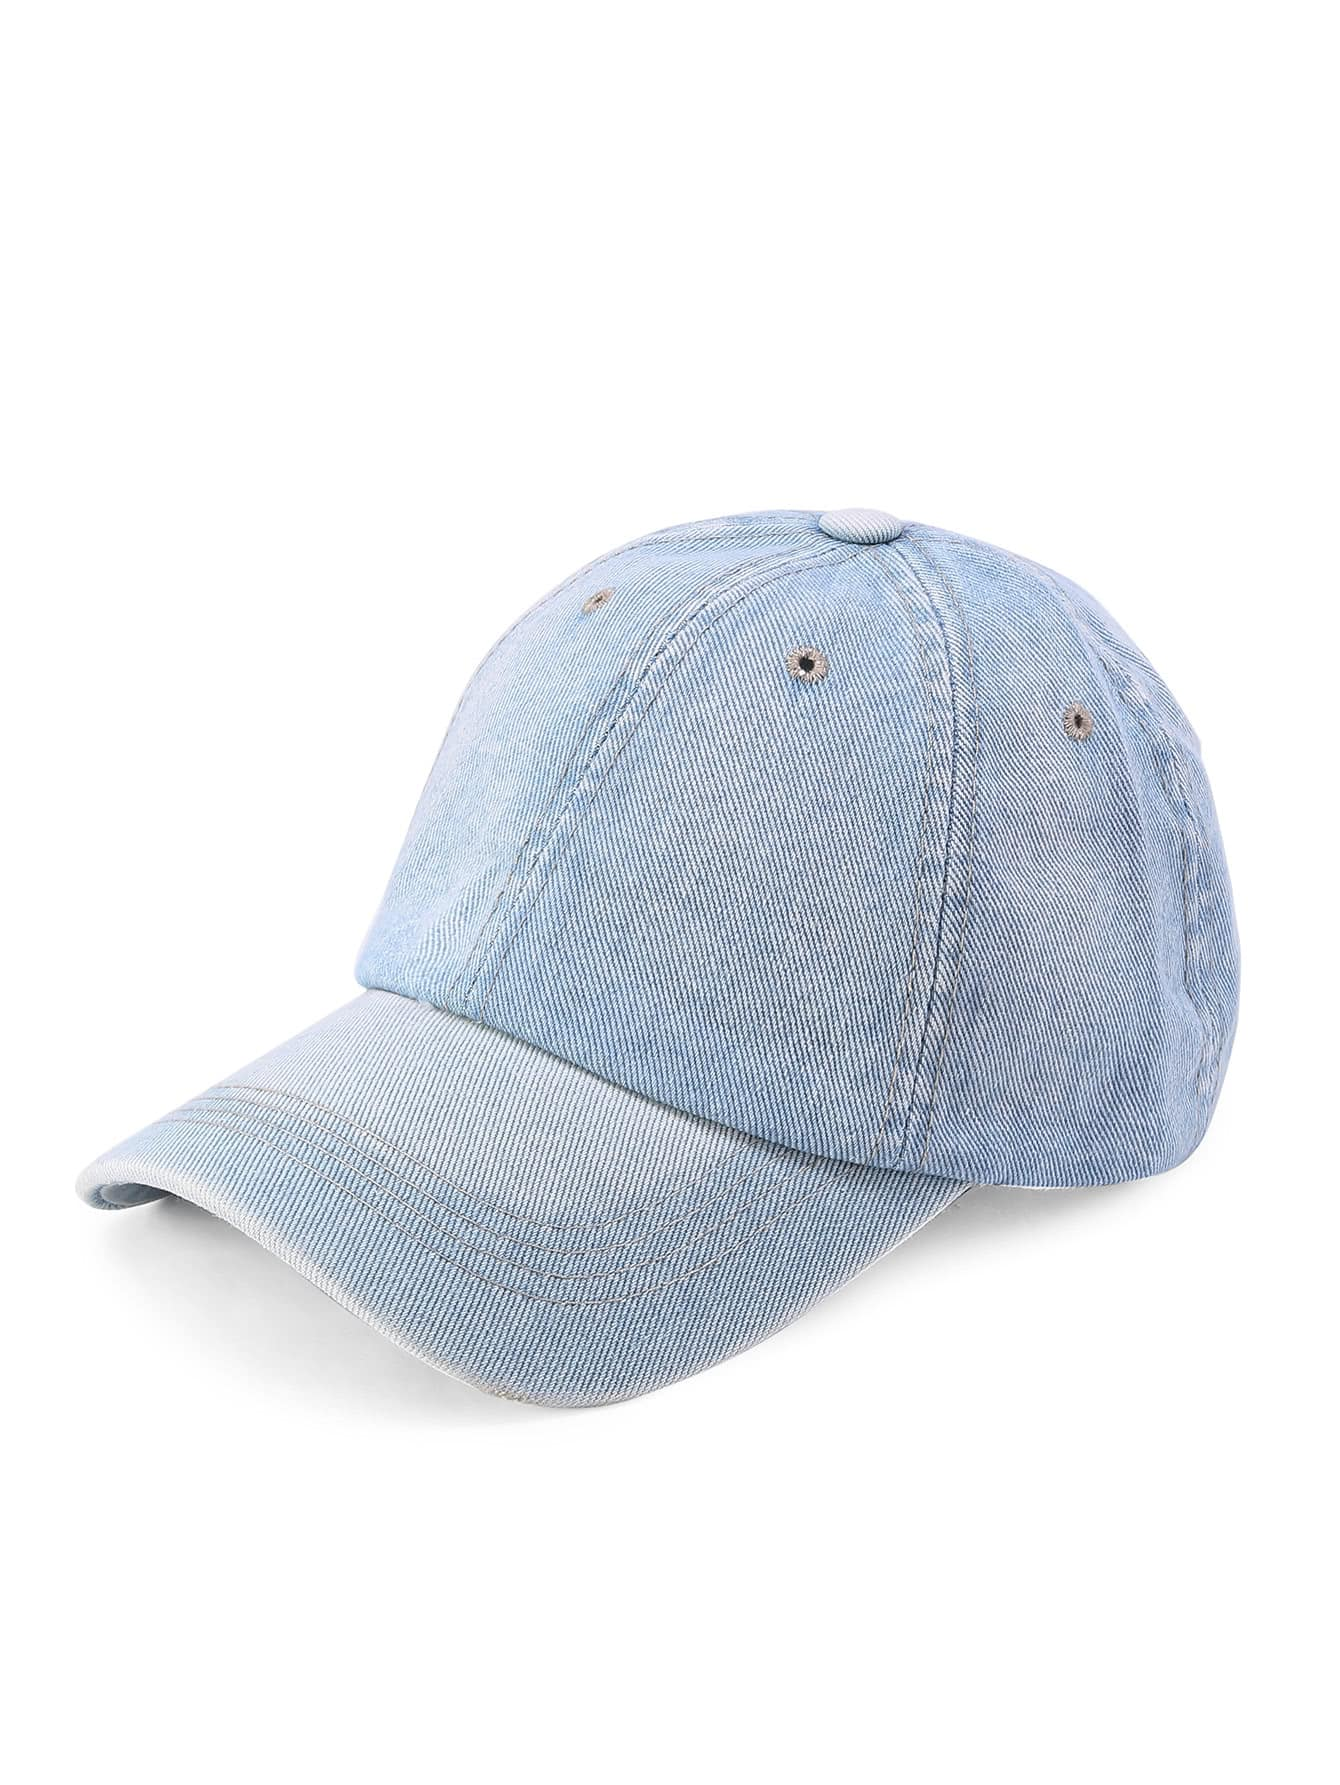 Denim Baseball Cap hat170622301